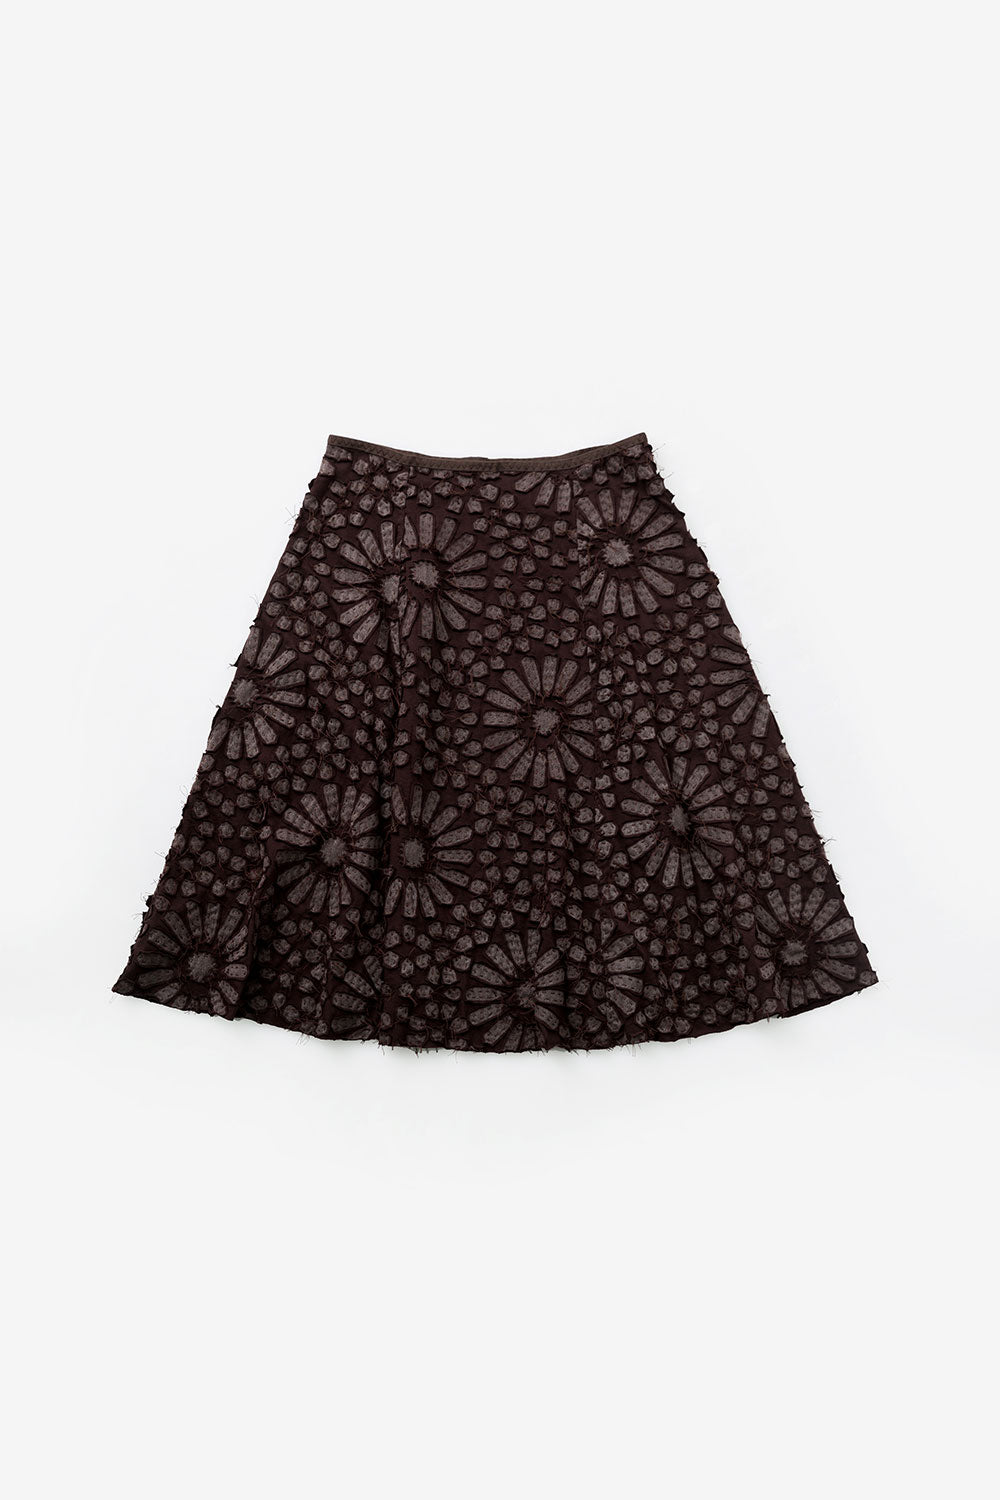 The School of Making Facets Stencil Abstract Floral Stencil Design for Hand-Painted DIY Clothing Projects on Brown Skirt